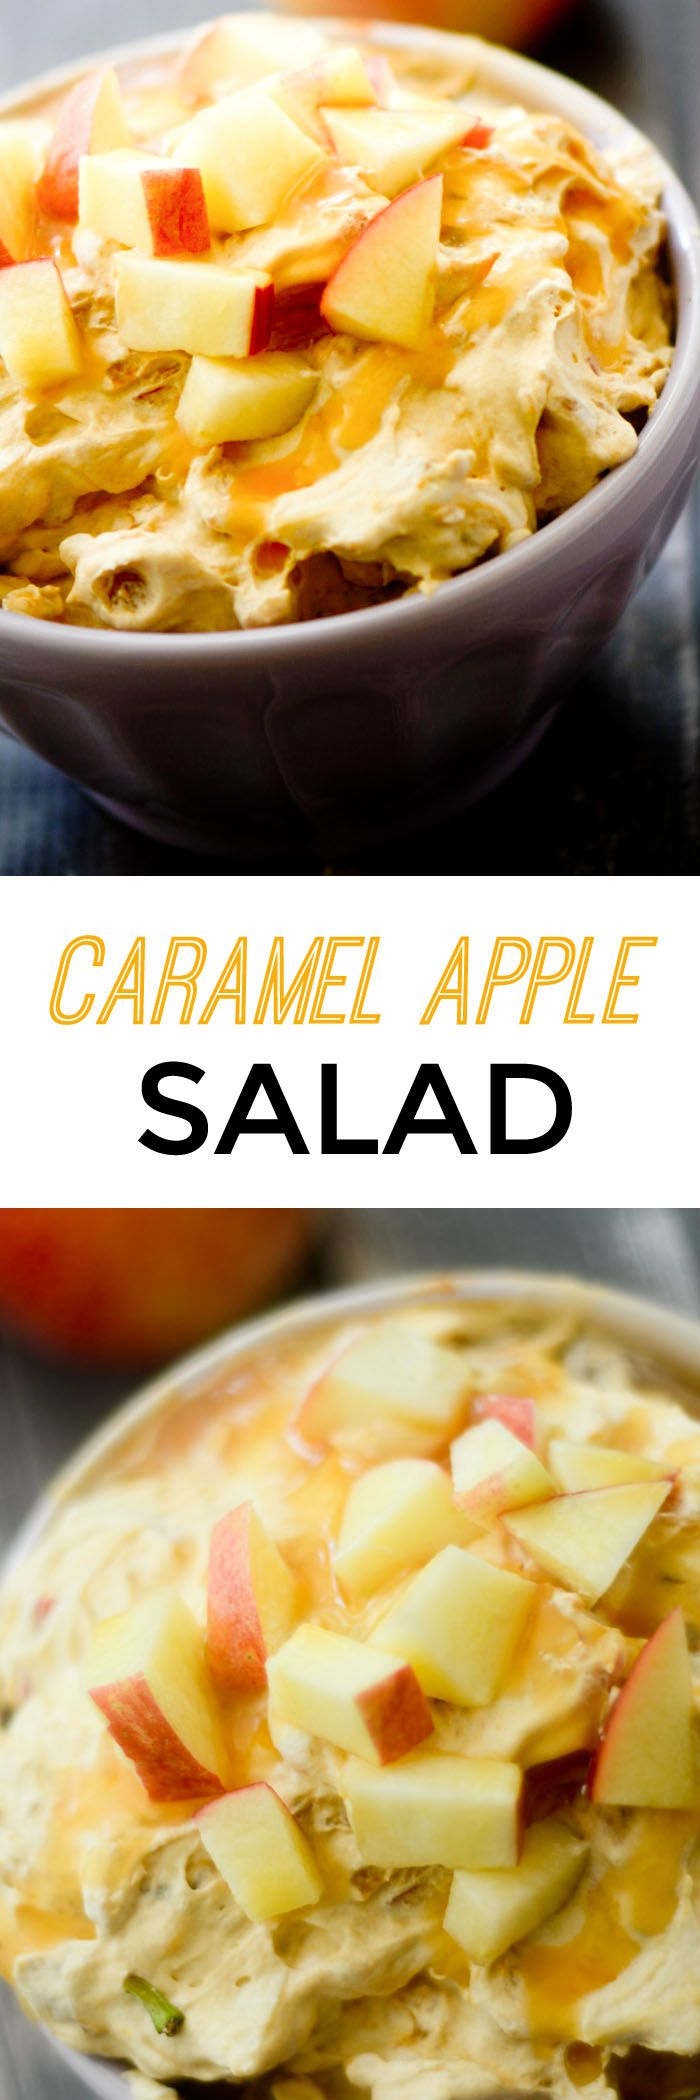 Caramel Apple Salad - Recipe Diaries                                                                                                                                                                                 More